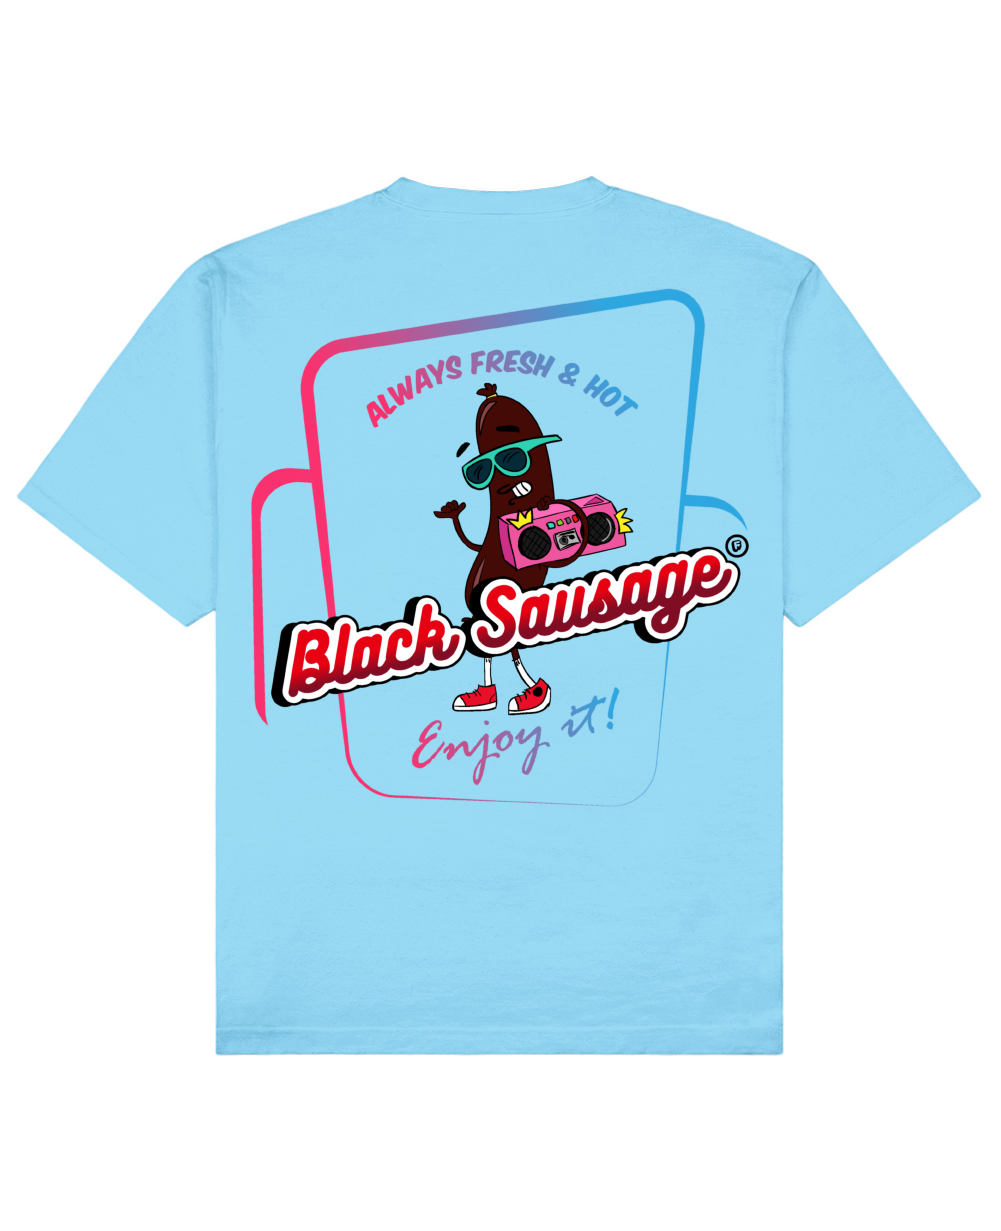 Black Sausage Print T-Shirt in Light Blue - T-Shirts - FOOD PORN CLUB - BRANMA